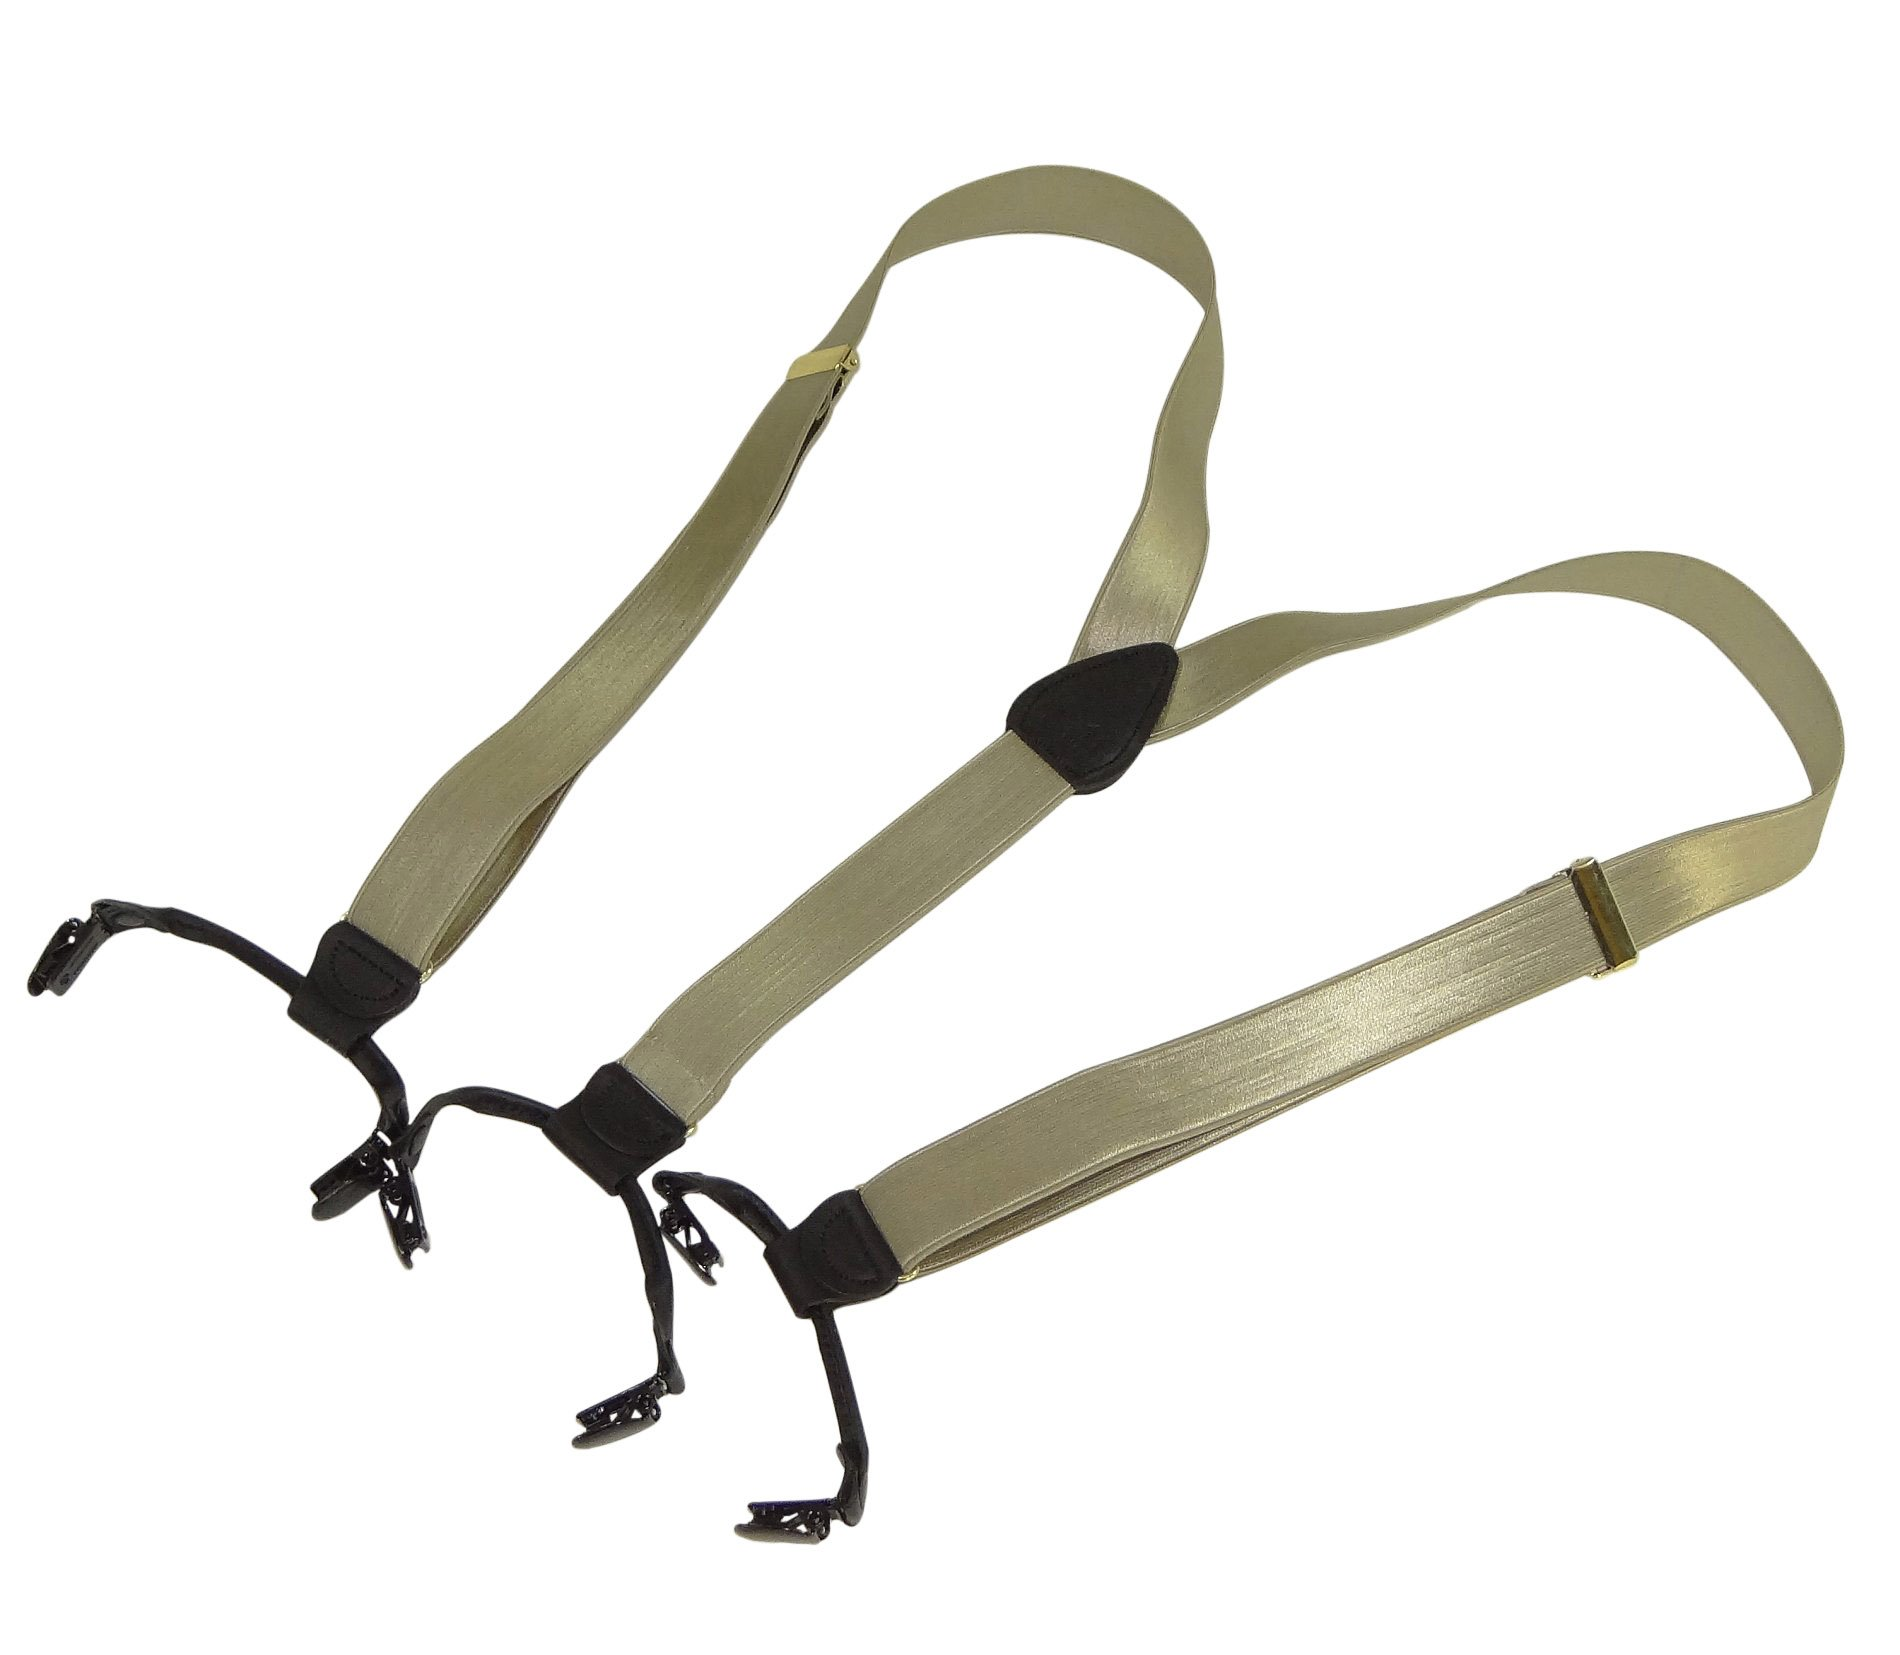 Holdup Brand Champagne Golden Tan Satin Finish Formal Double-ups Style Suspenders